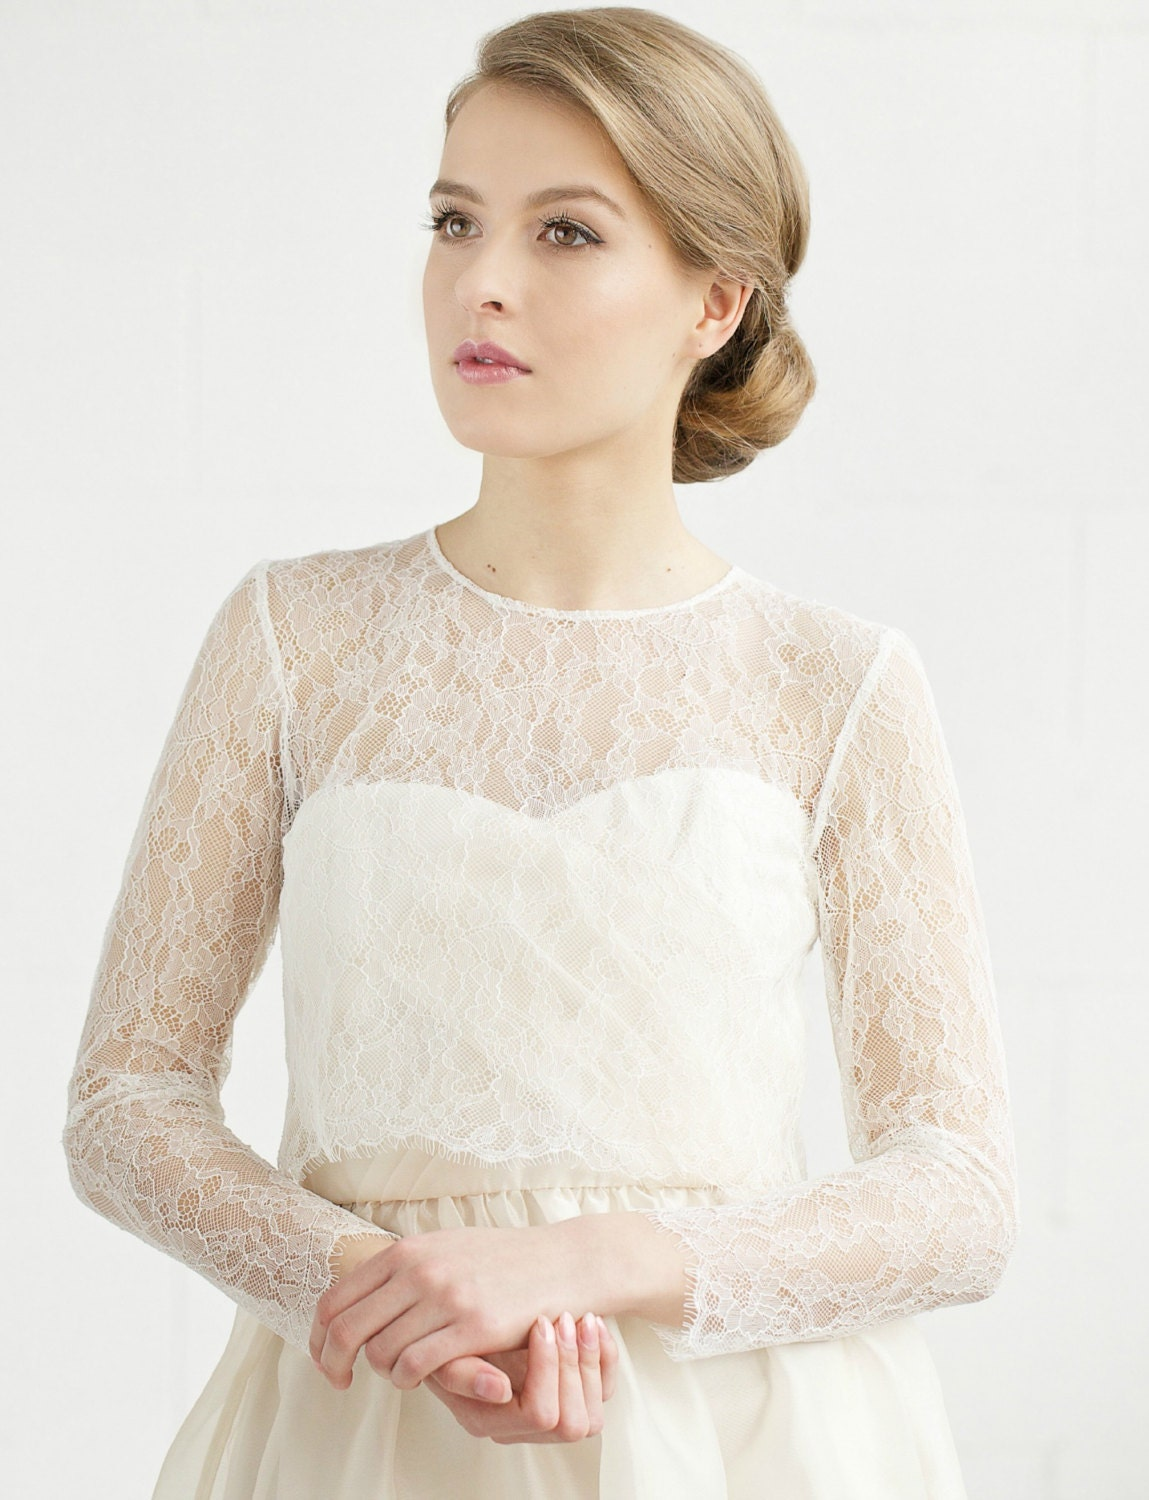 wedding lace top bridal lace cover up bridal by lavenderbyjurgita